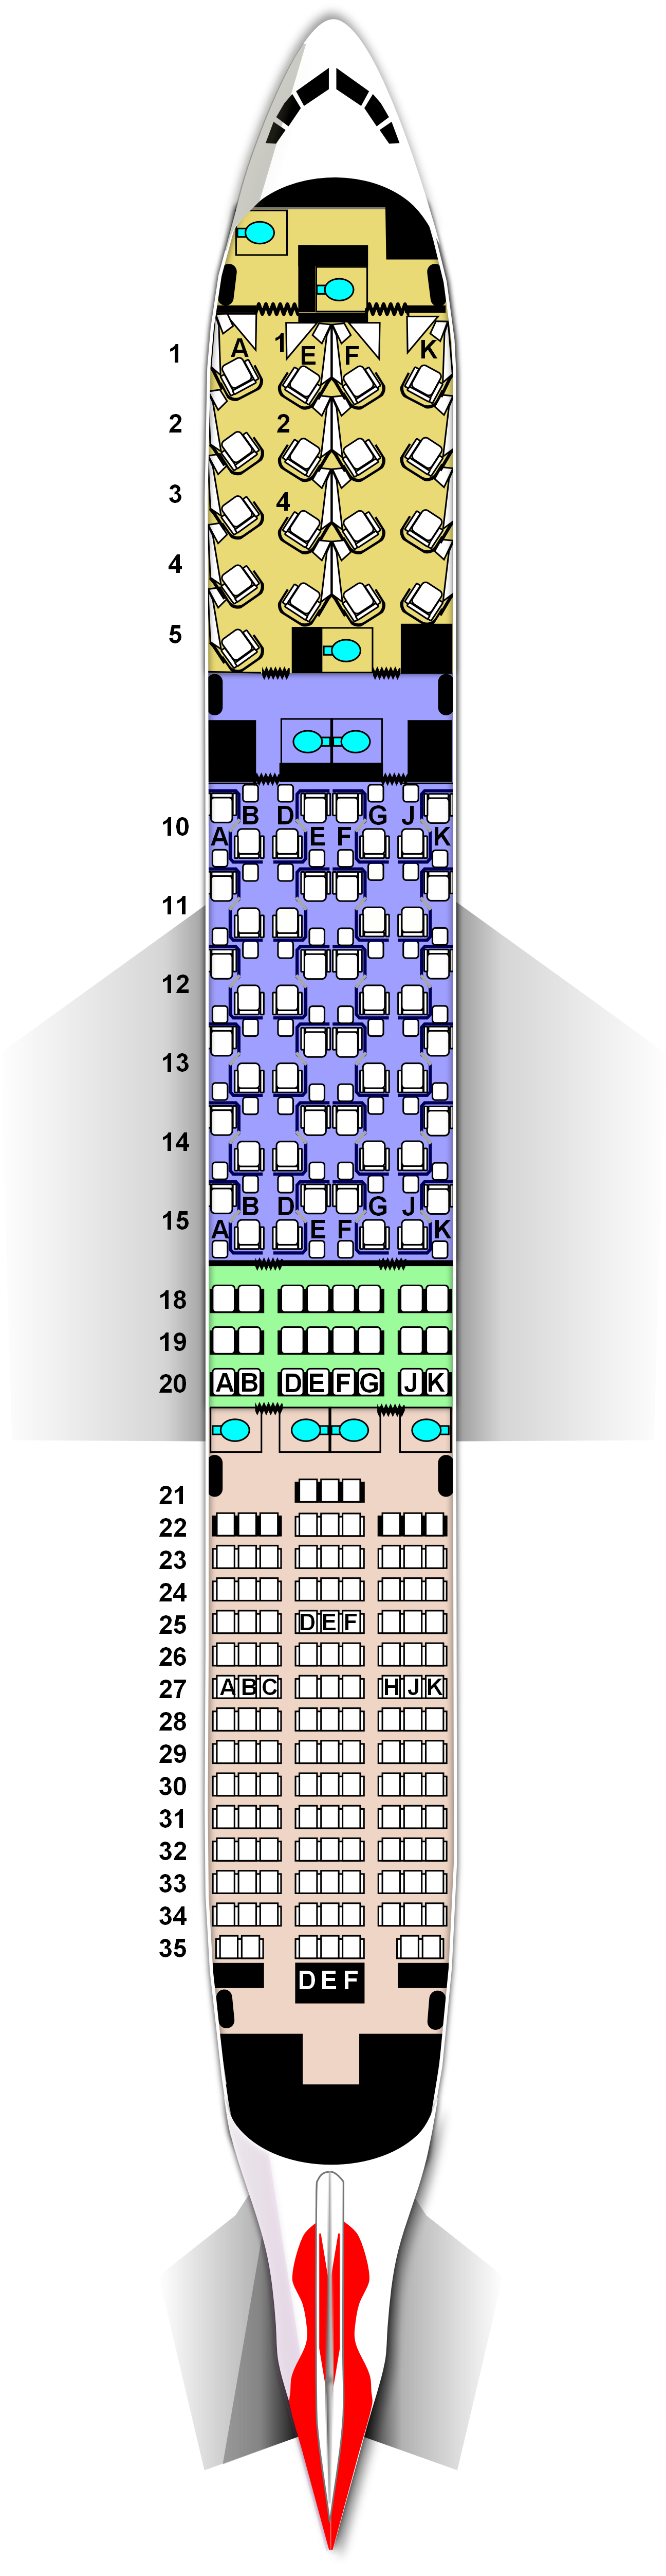 17F48J24W127Y   The BA Source on 777 seat plan, 777 seat diagram, delta a380 seating map, 777 seat profile, 777 seat configuration,